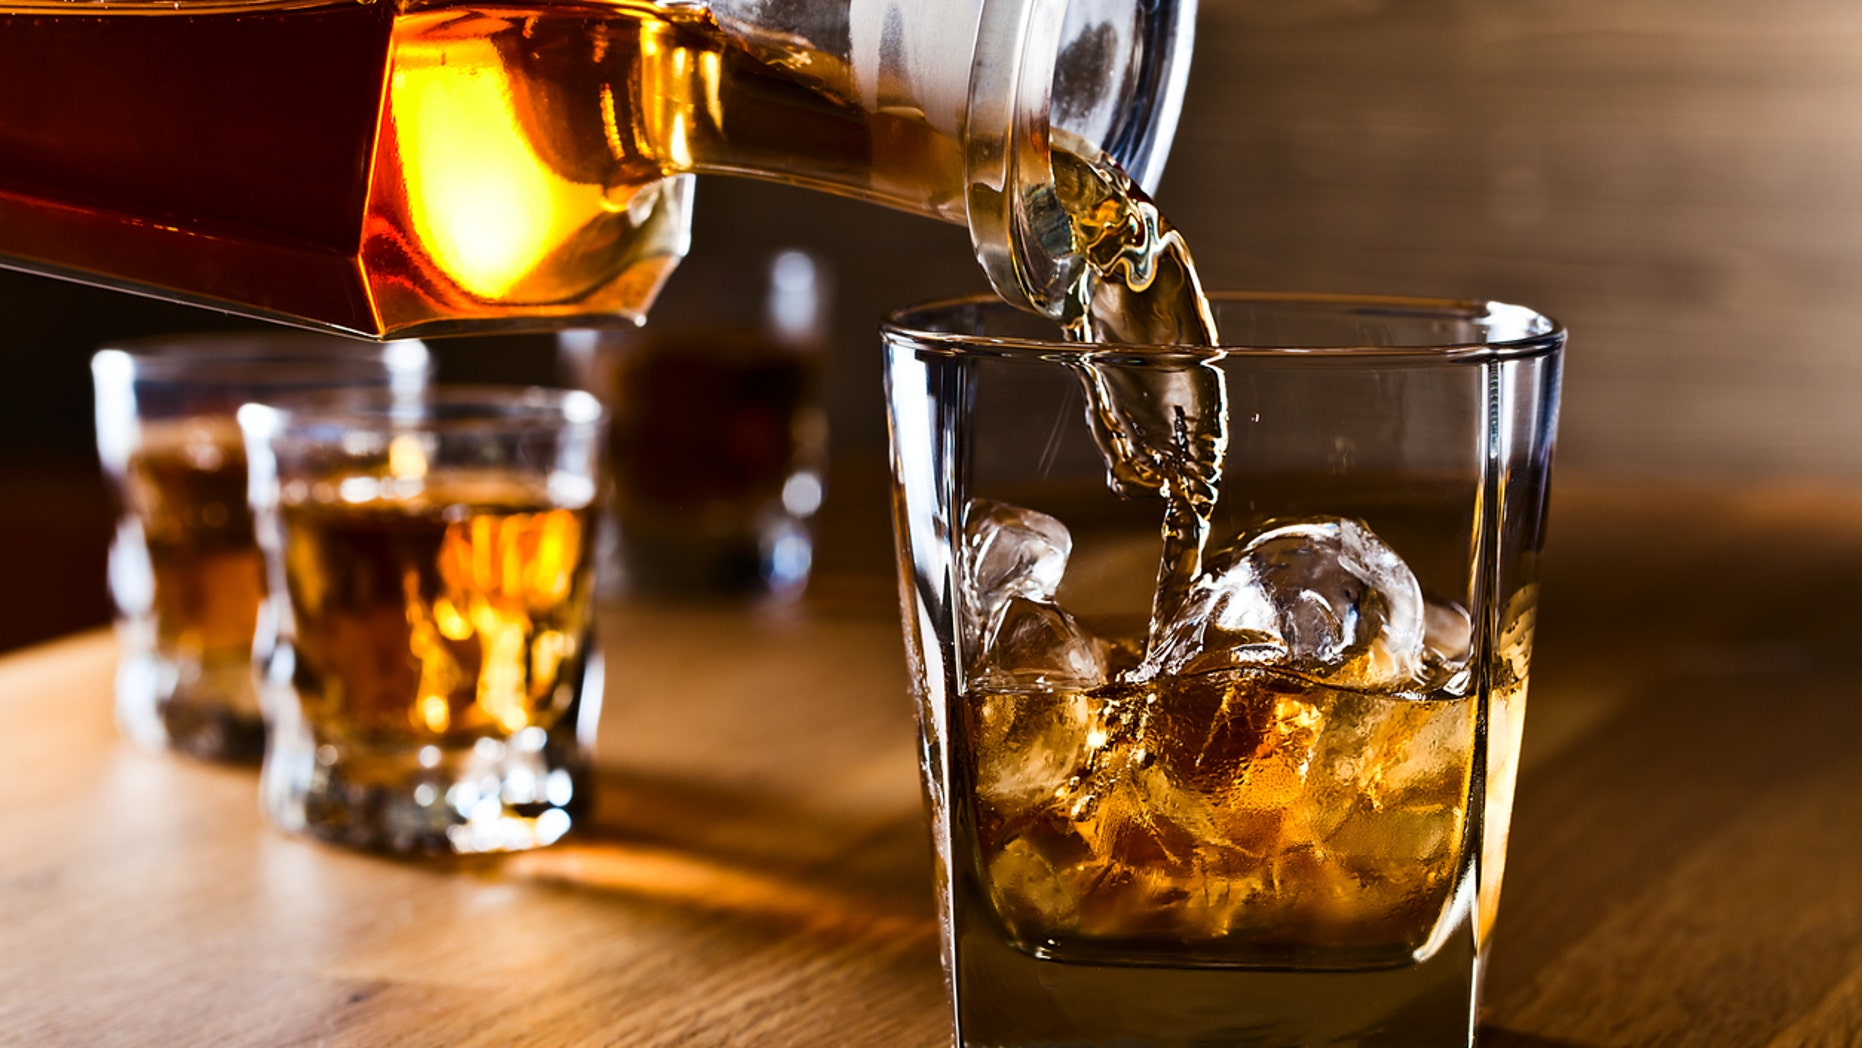 Whisky drinking centenarian credits her daily shot for her long life.